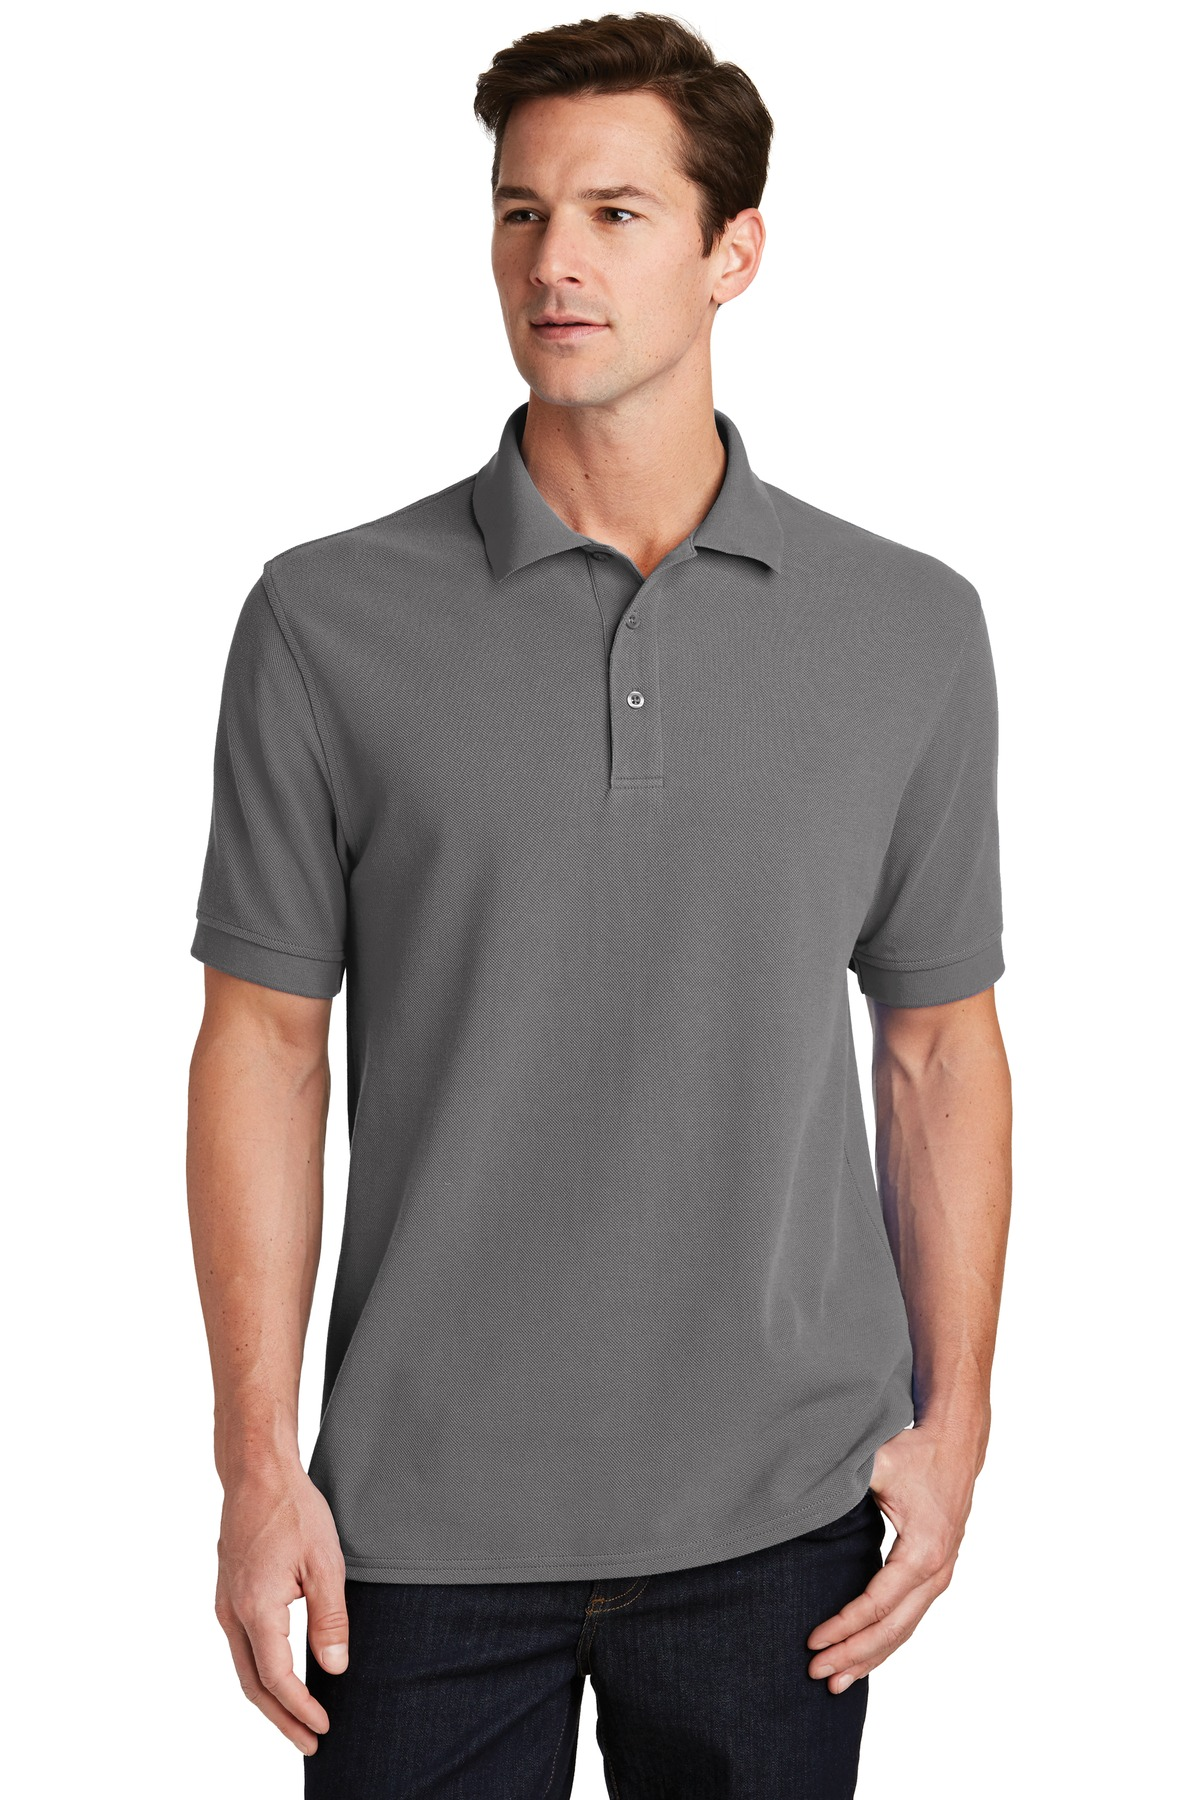 Port & Company ®  Combed Ring Spun Pique Polo. KP1500 - Medium Grey